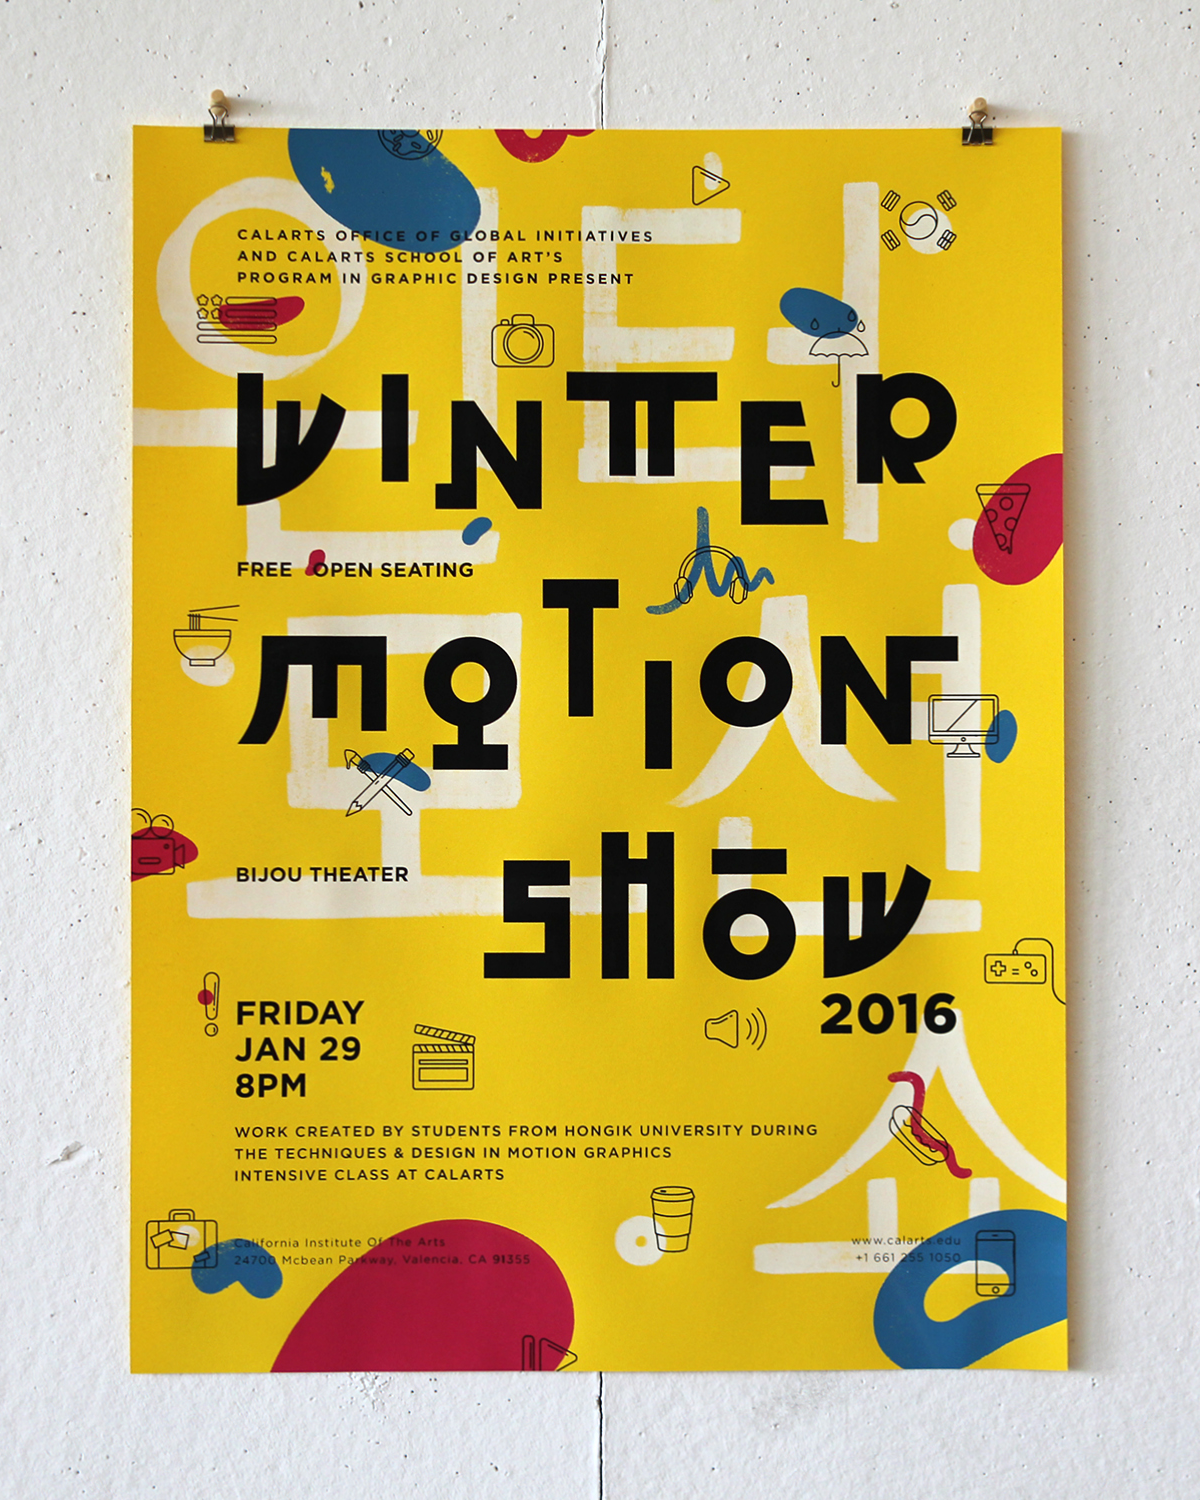 WinterInstitute2016_Poster.png